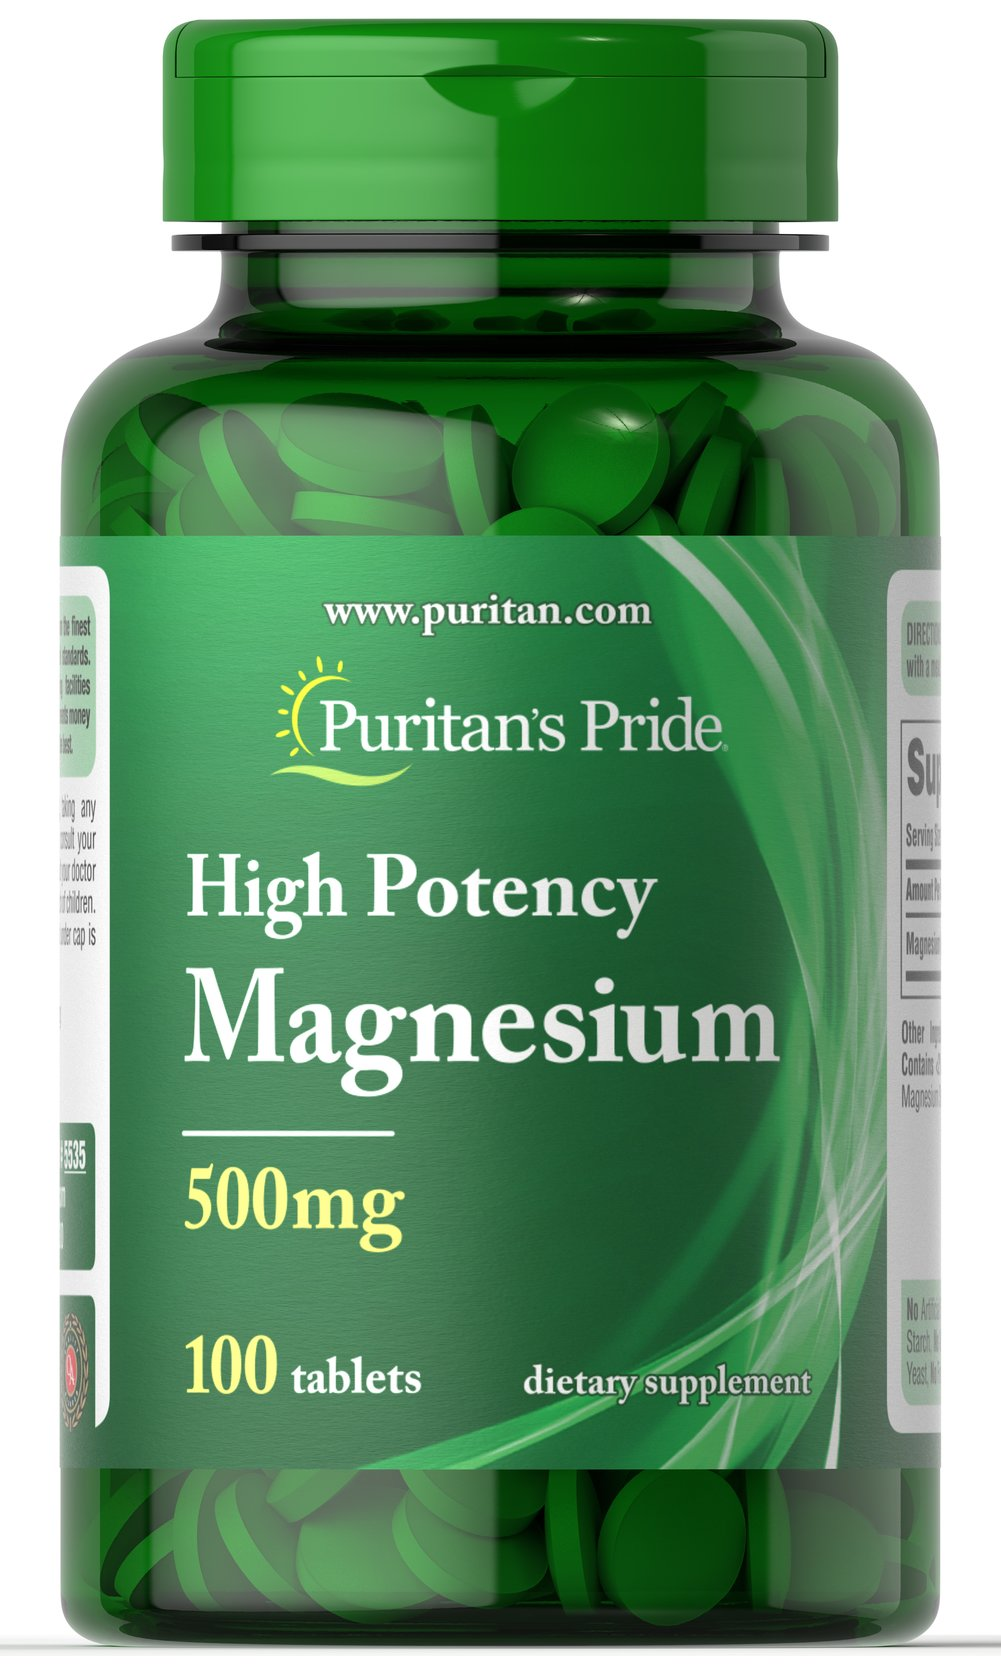 Magnesium 500 mg <p>Magnesium offers another option, besides Calcium, for supporting bone health.** Magnesium plays an essential role in maintaining bone mineralization, and is also involved in muscle contractions and nerve impulses.** Adults can take one caplet daily with a meal.</p> 100 Tablets 500 mg $7.69